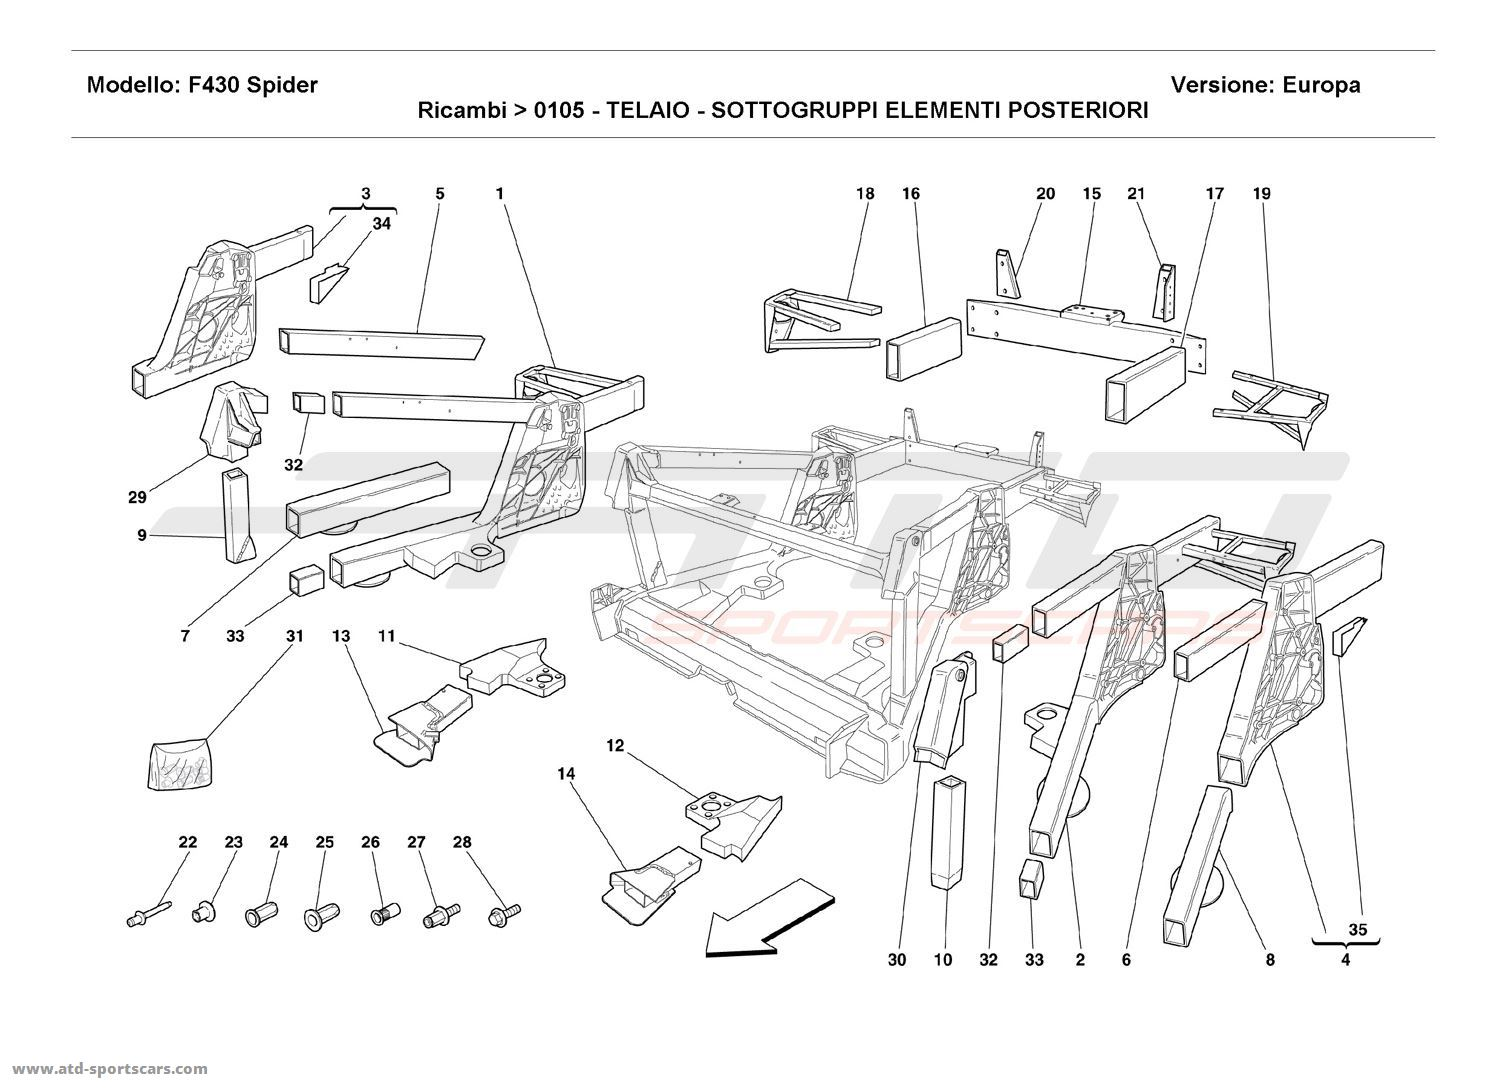 FRAME - REAR ELEMENTS SUB-GROUPS